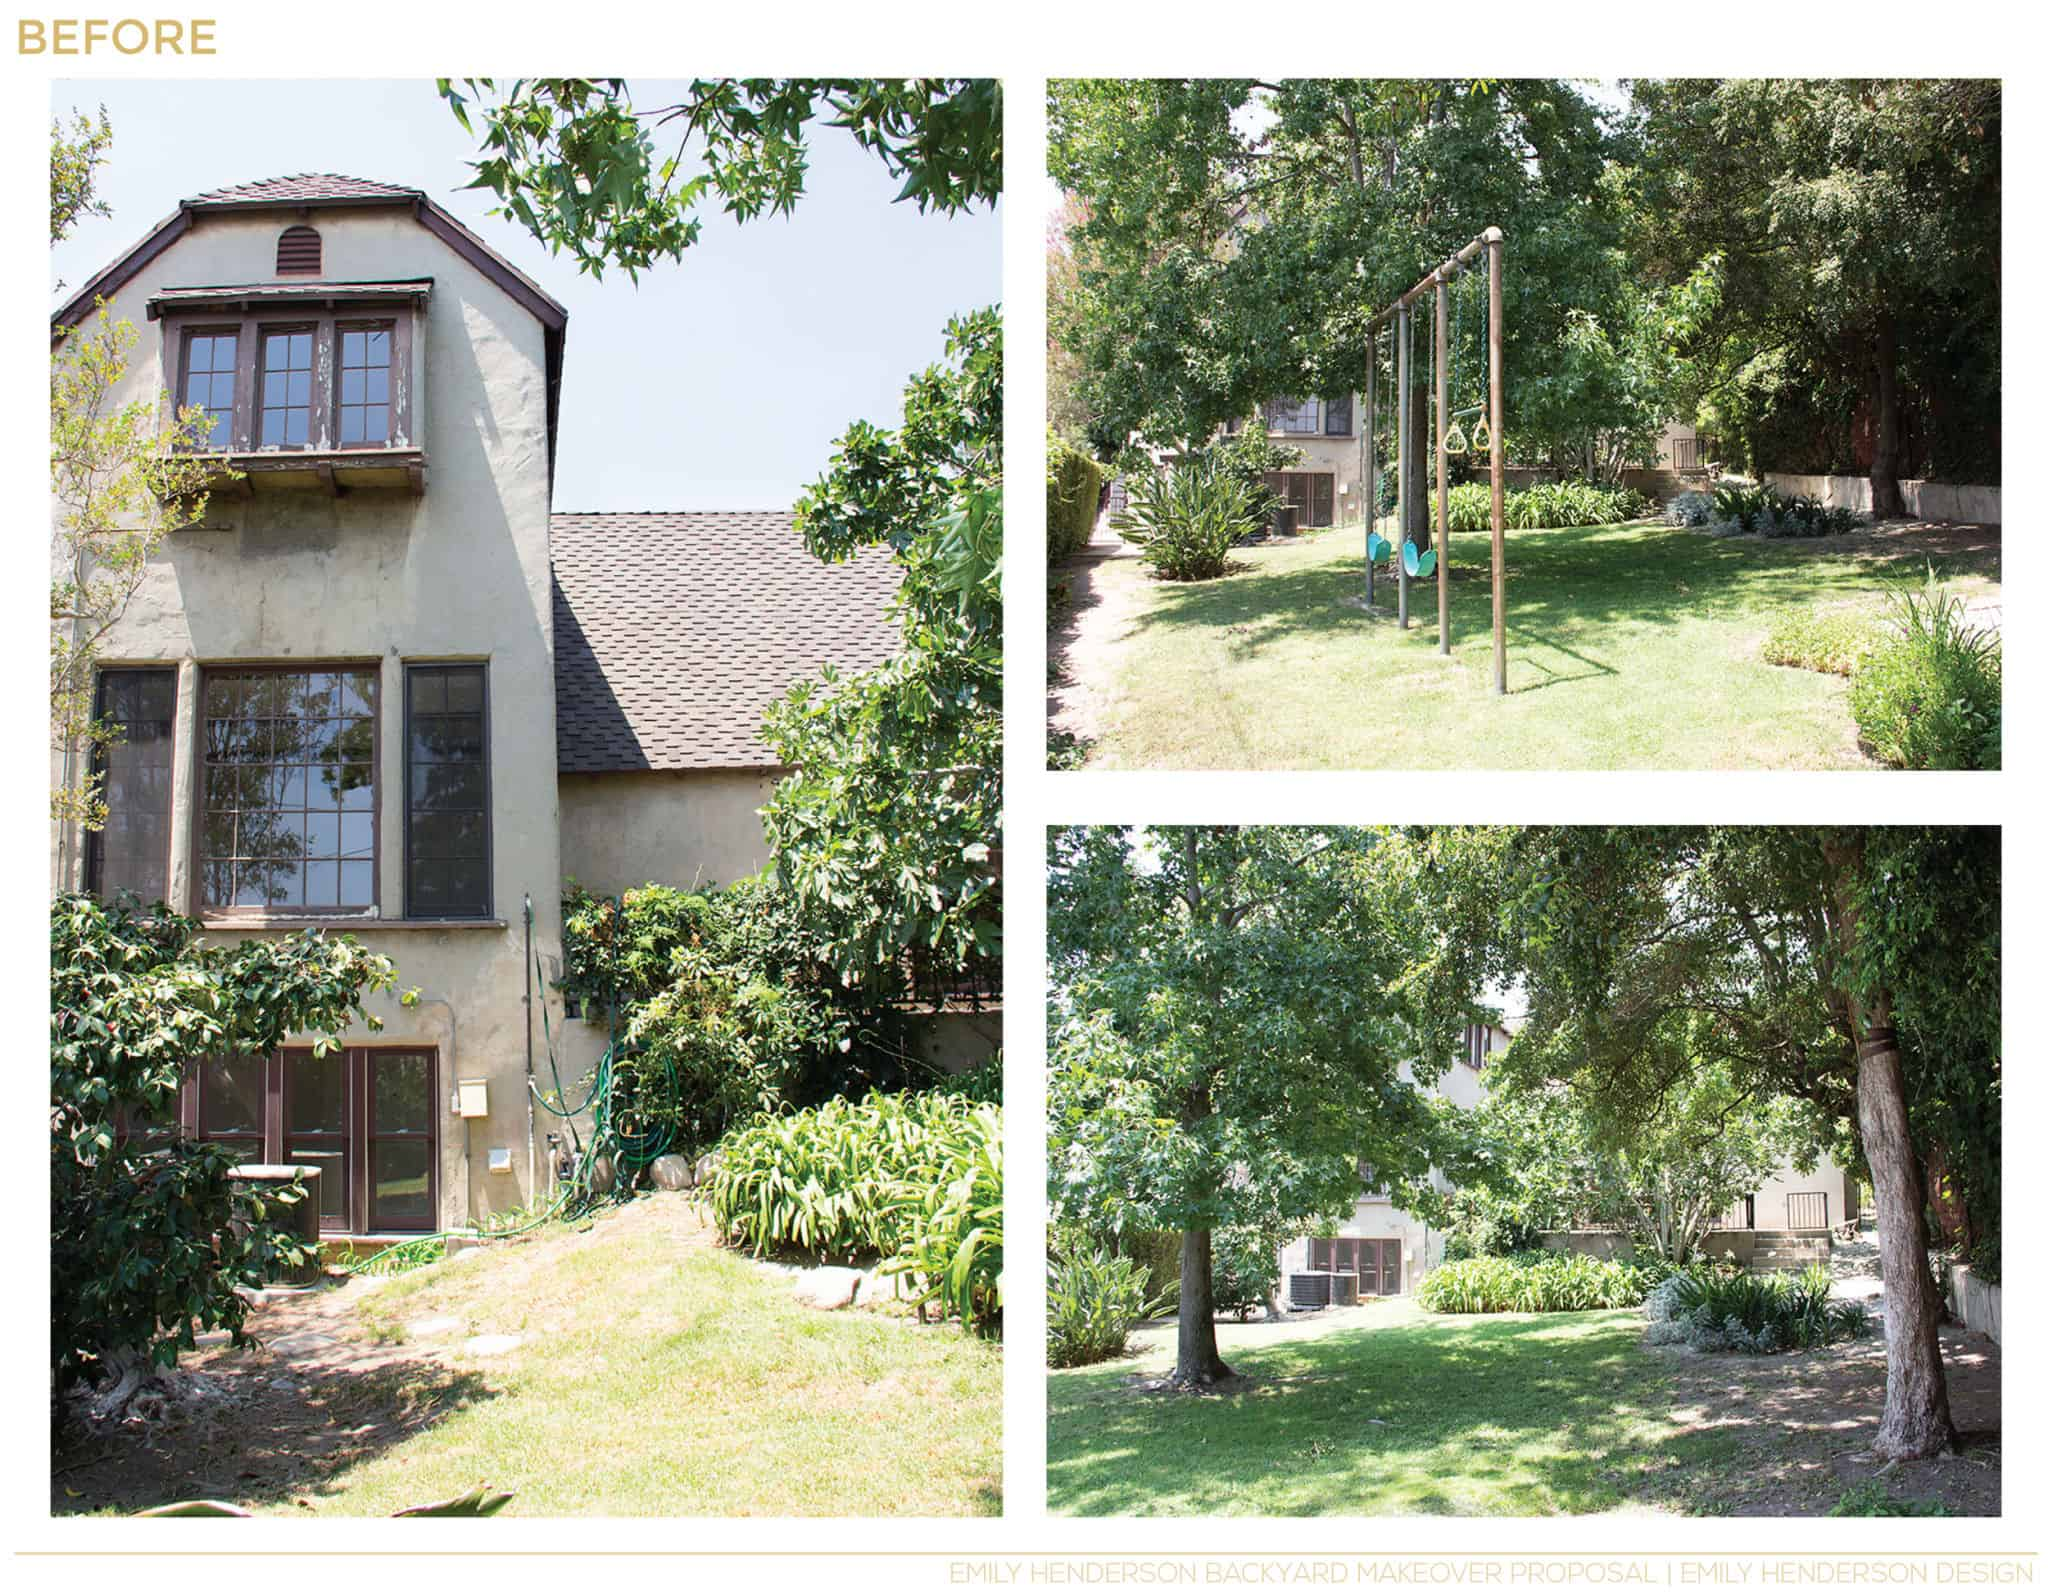 Ideas For The Most Family Friendly Backyard Ever Emily